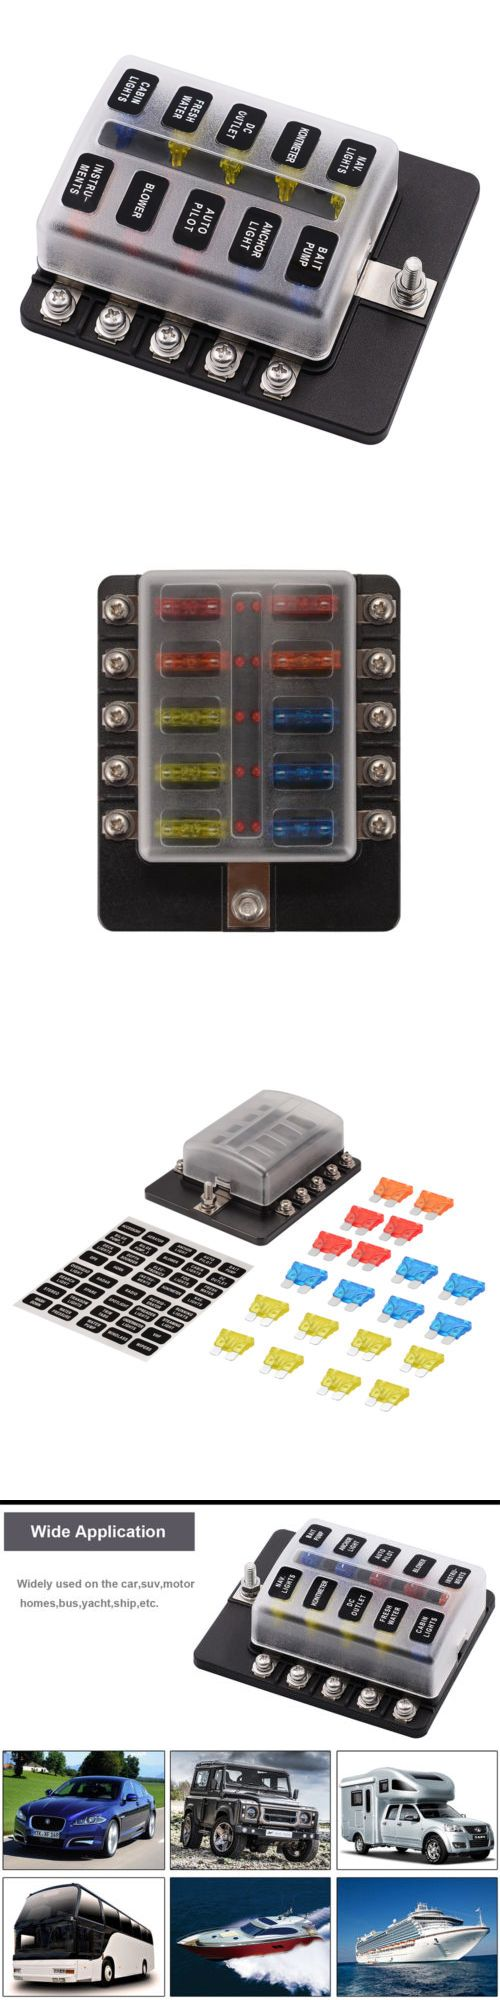 10way 100a Blade Fuse Box Block Holder Included For Car Boat Light 12v 24v Ma1286 Fuses And Holders 50551 Pinterest Boating